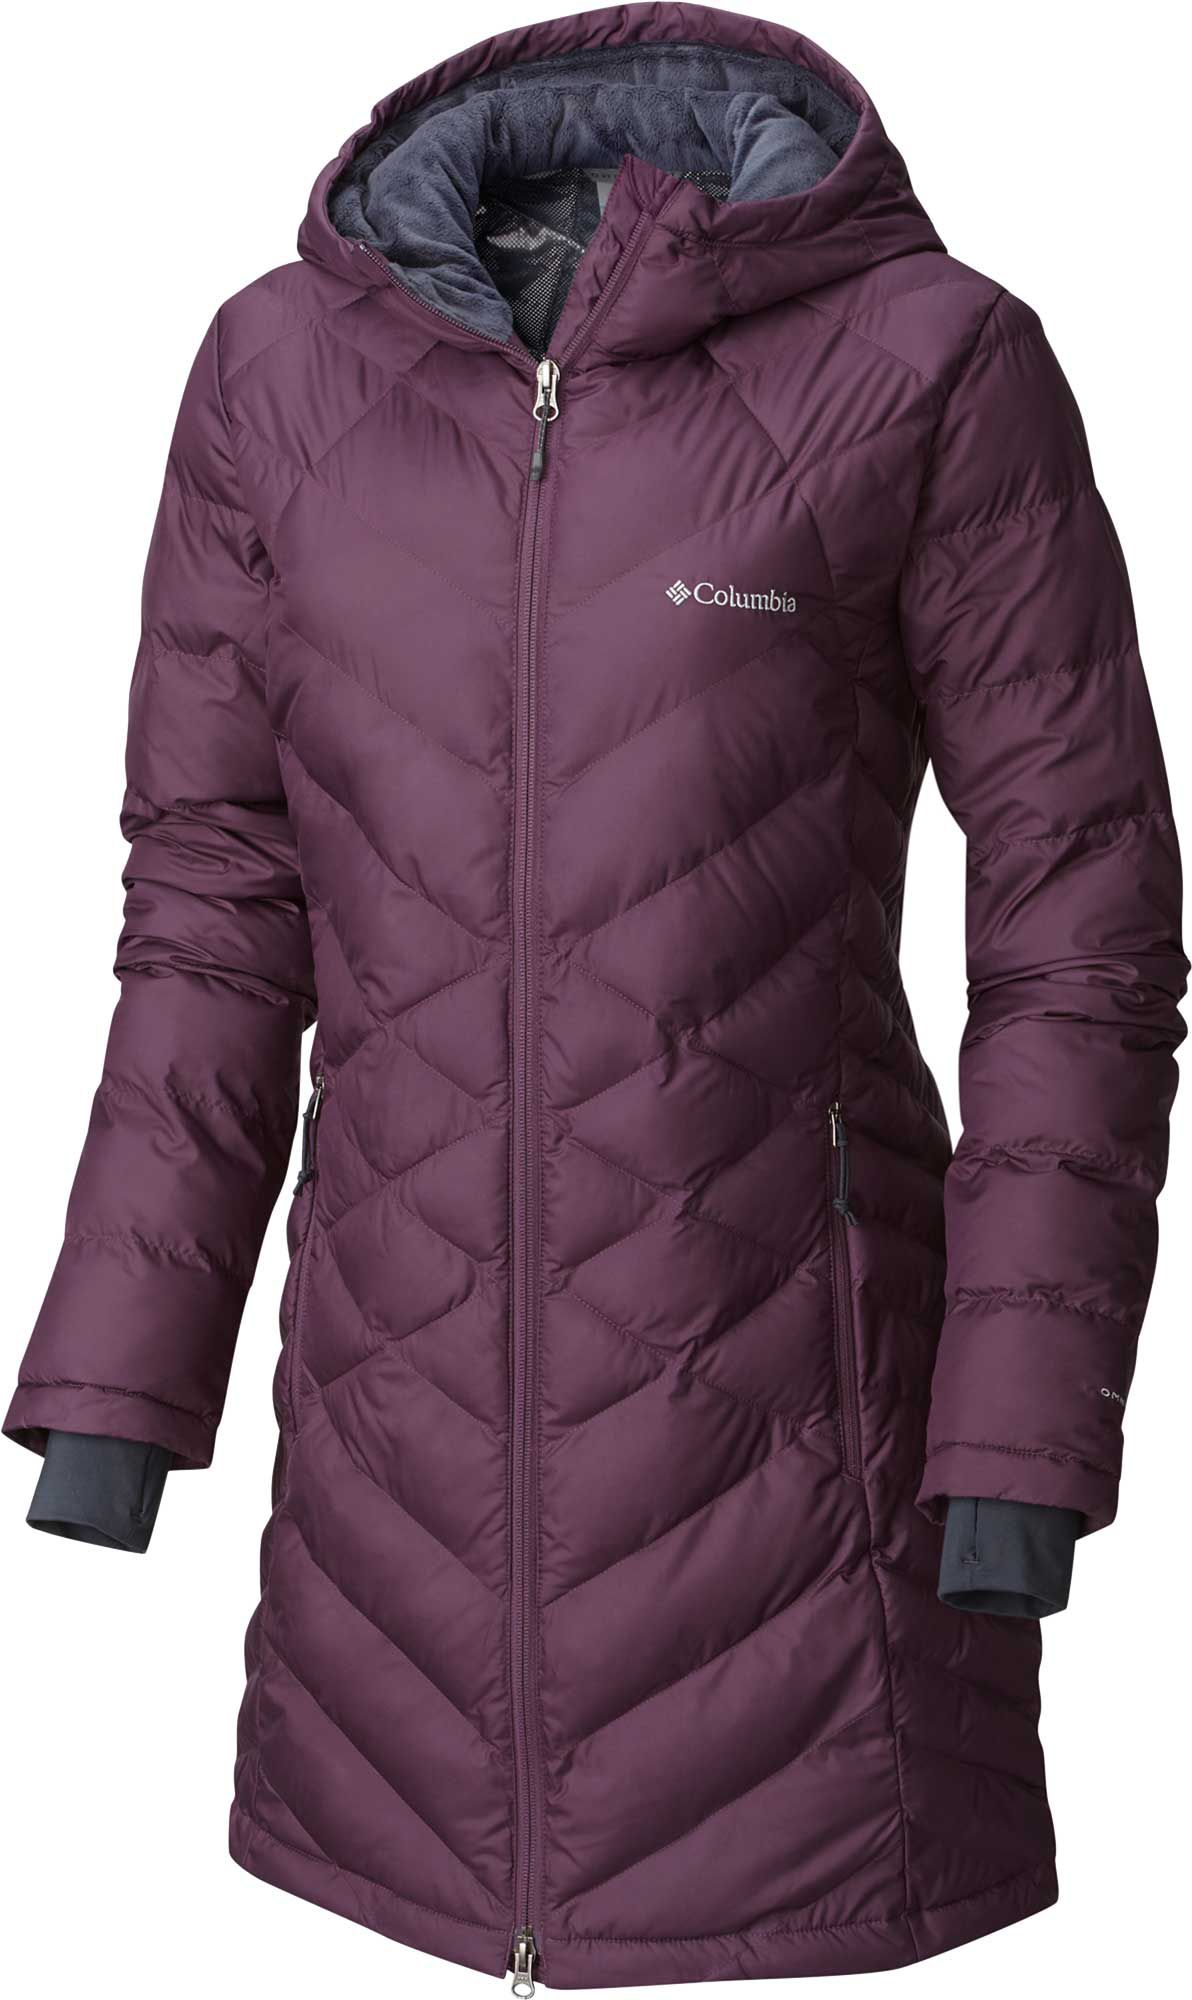 Columbia Women's Heavenly Long Hooded Down Jacket | DICK'S ...